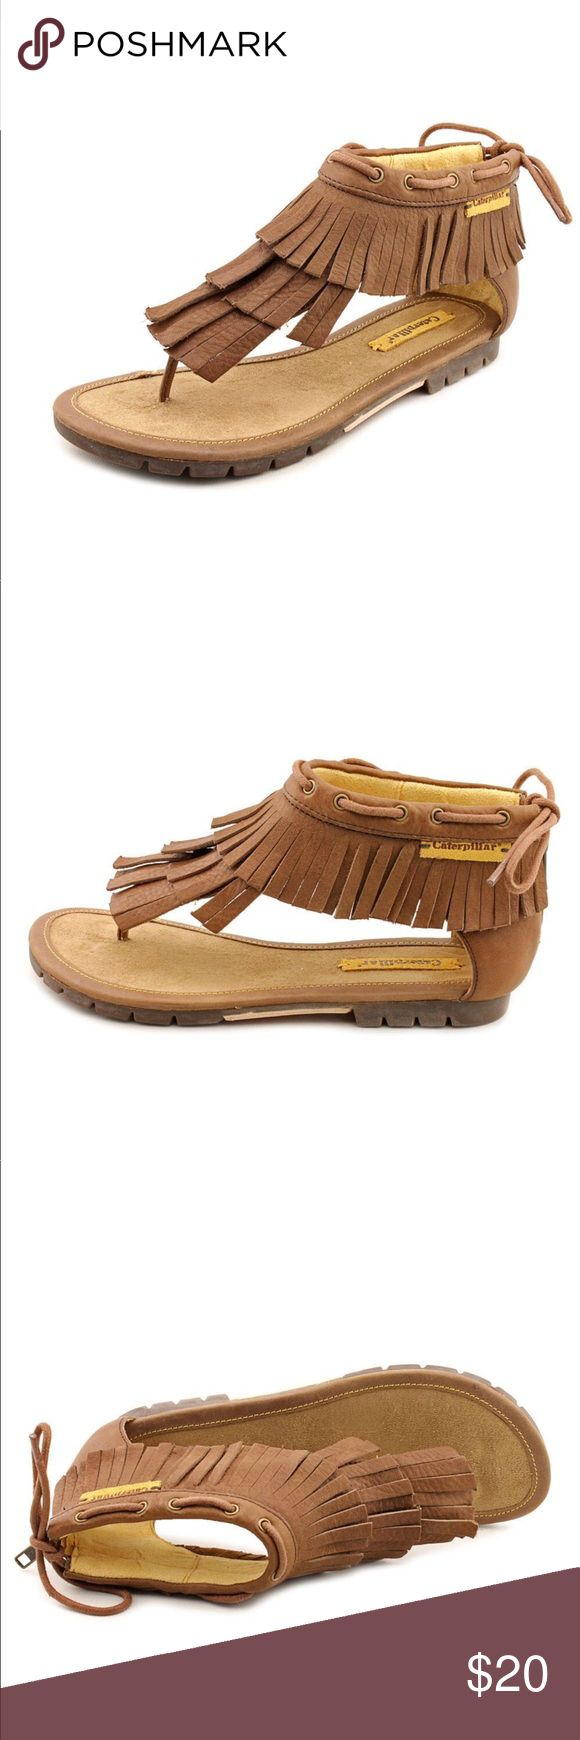 Caterpillar | leather fringe sandals Shoes have a small scuff mark on one edge (see pictures ) otherwise in good condition. Size 9 Caterpillar Shoes Sandals